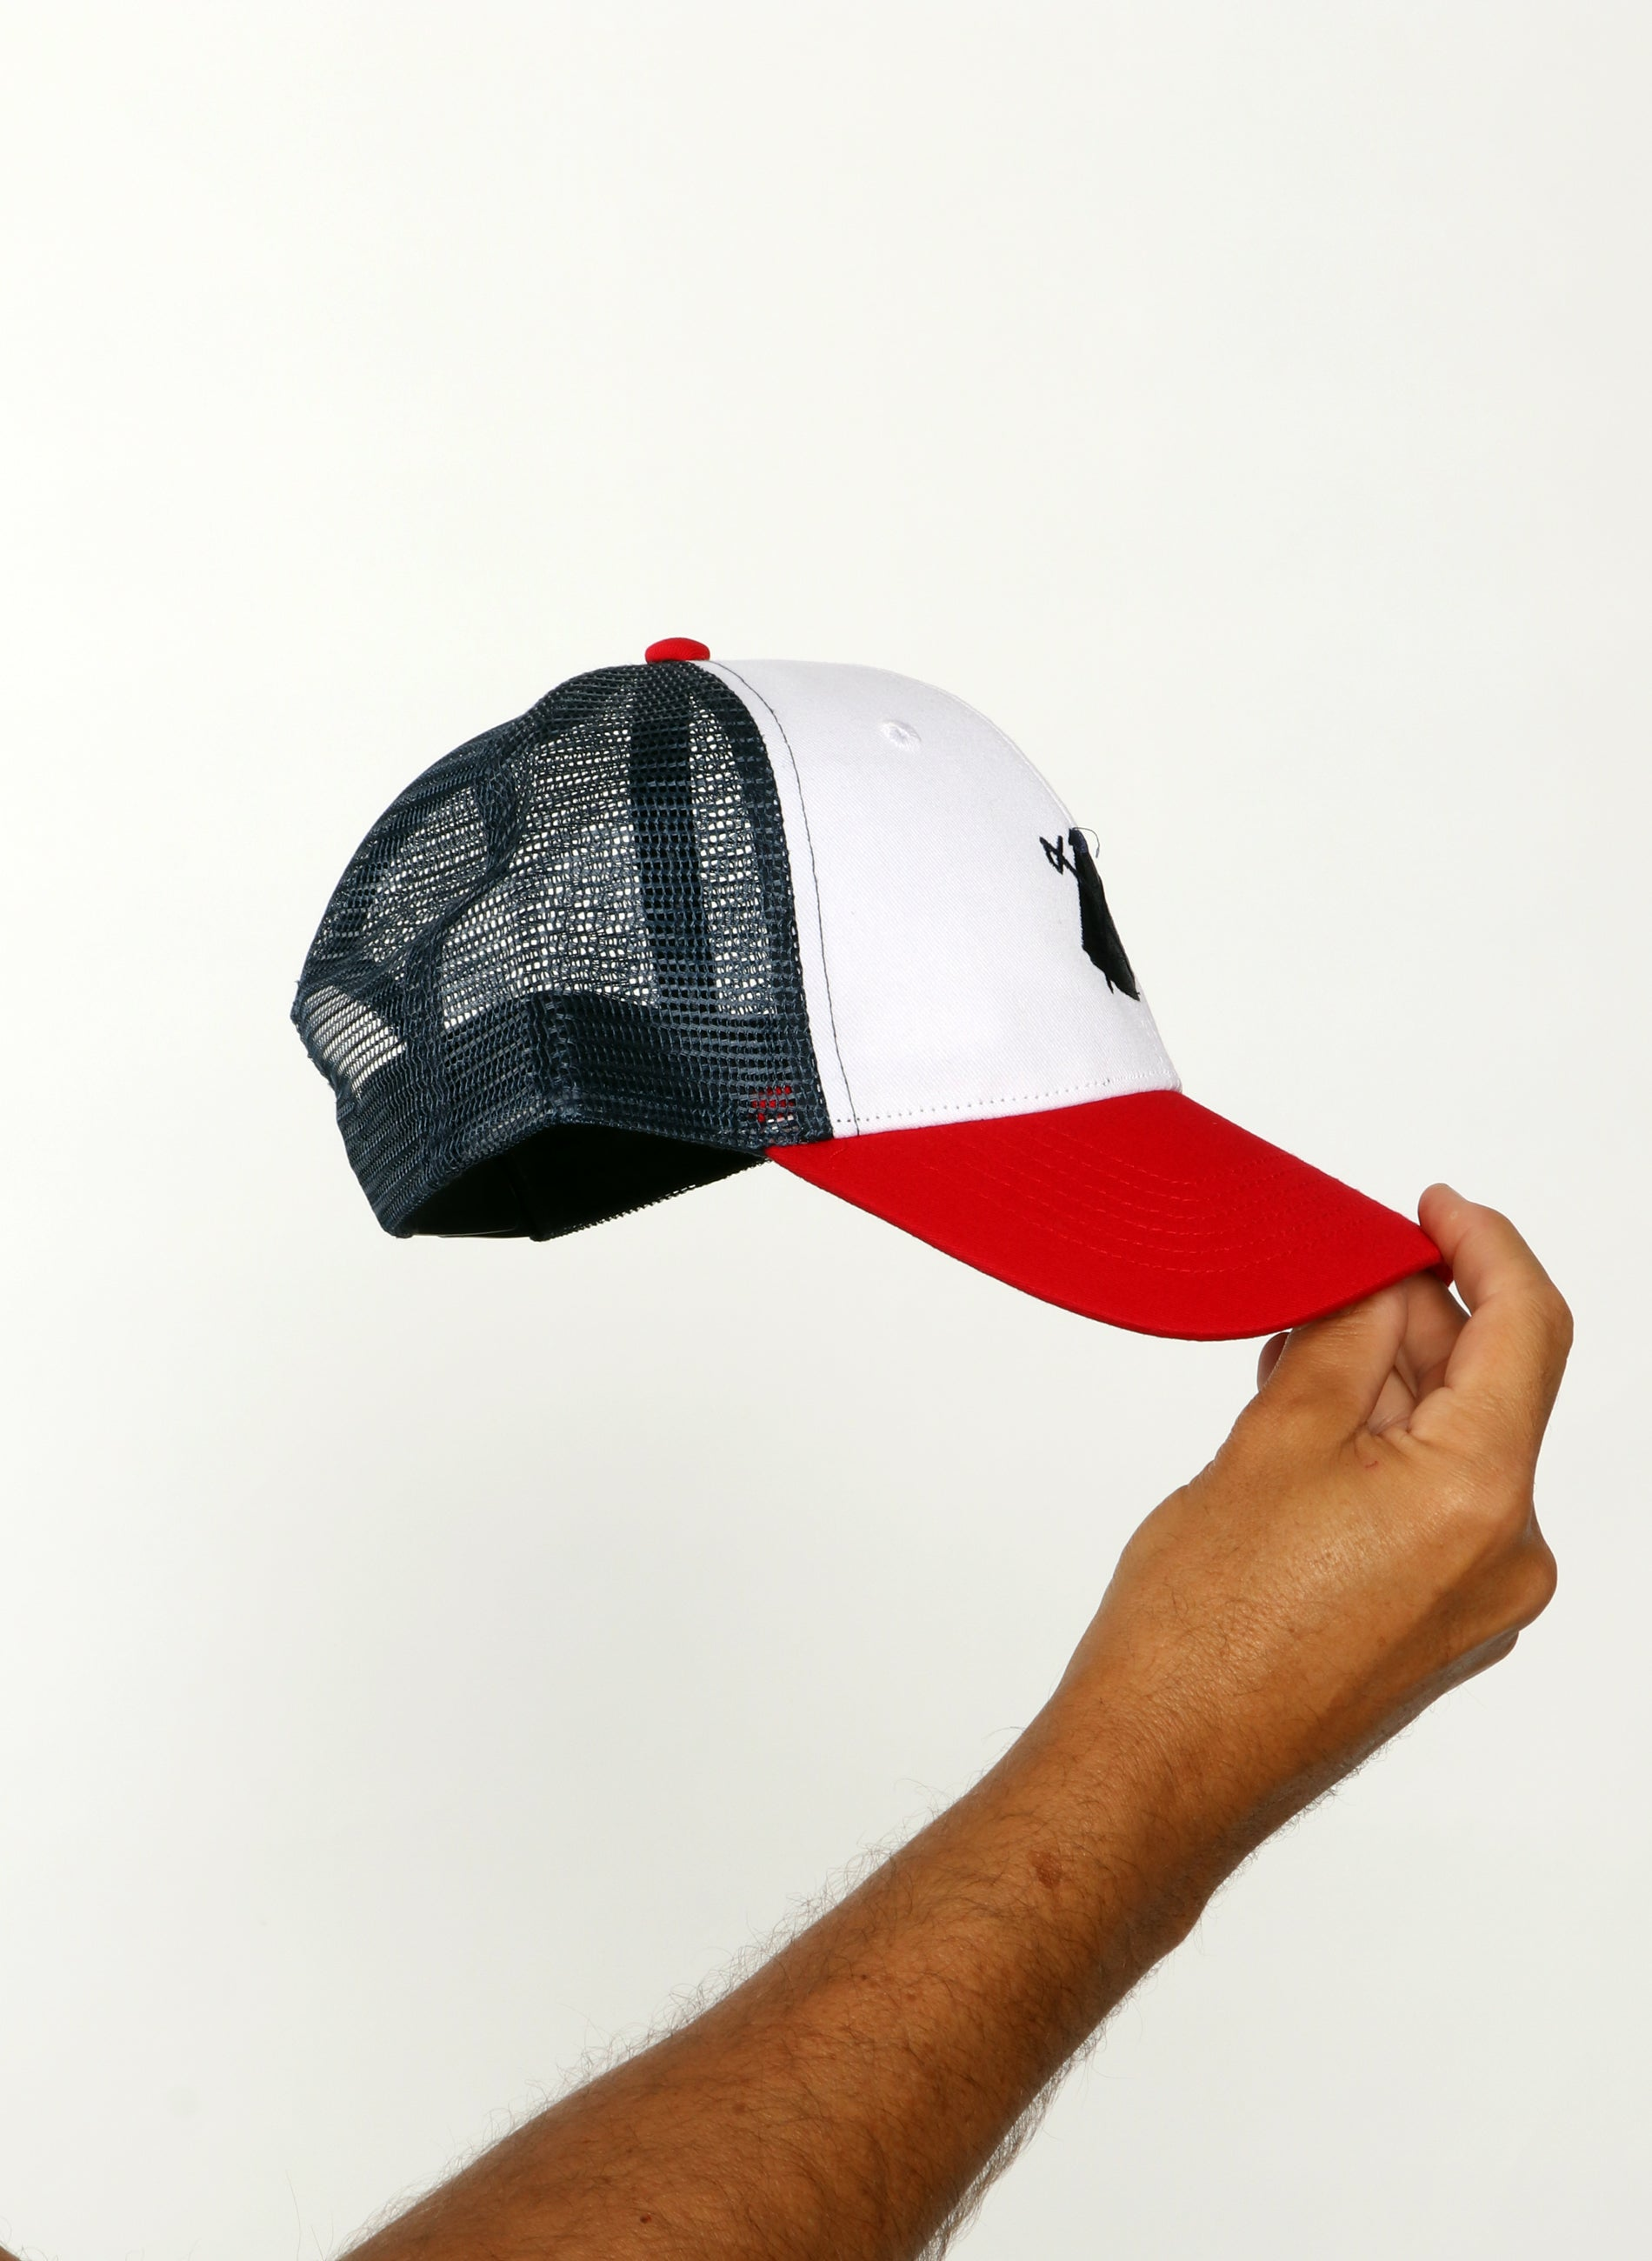 Blue Mesh Cap with Red Visor